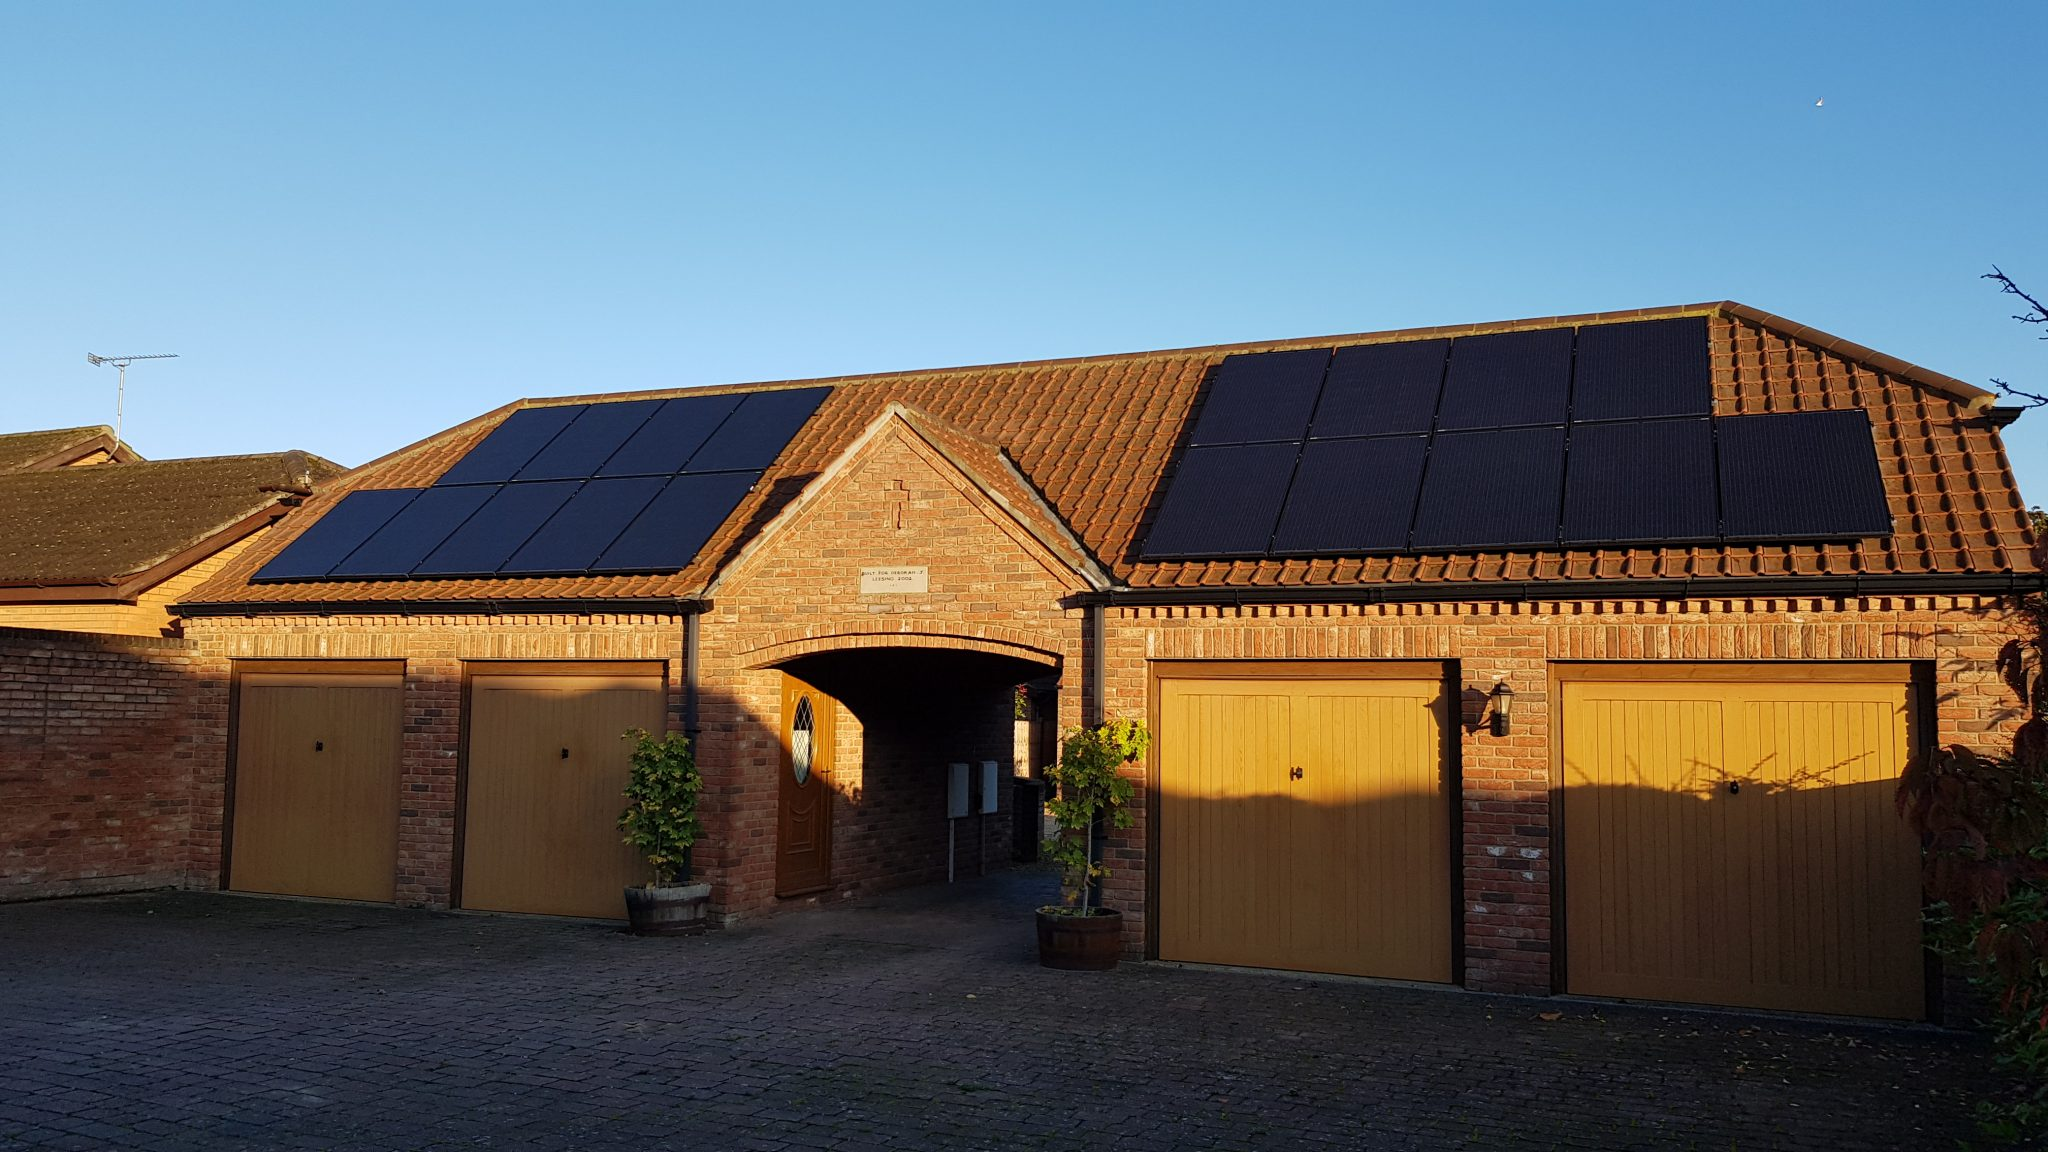 Solar PV - Cherry Willingham, Lincoln